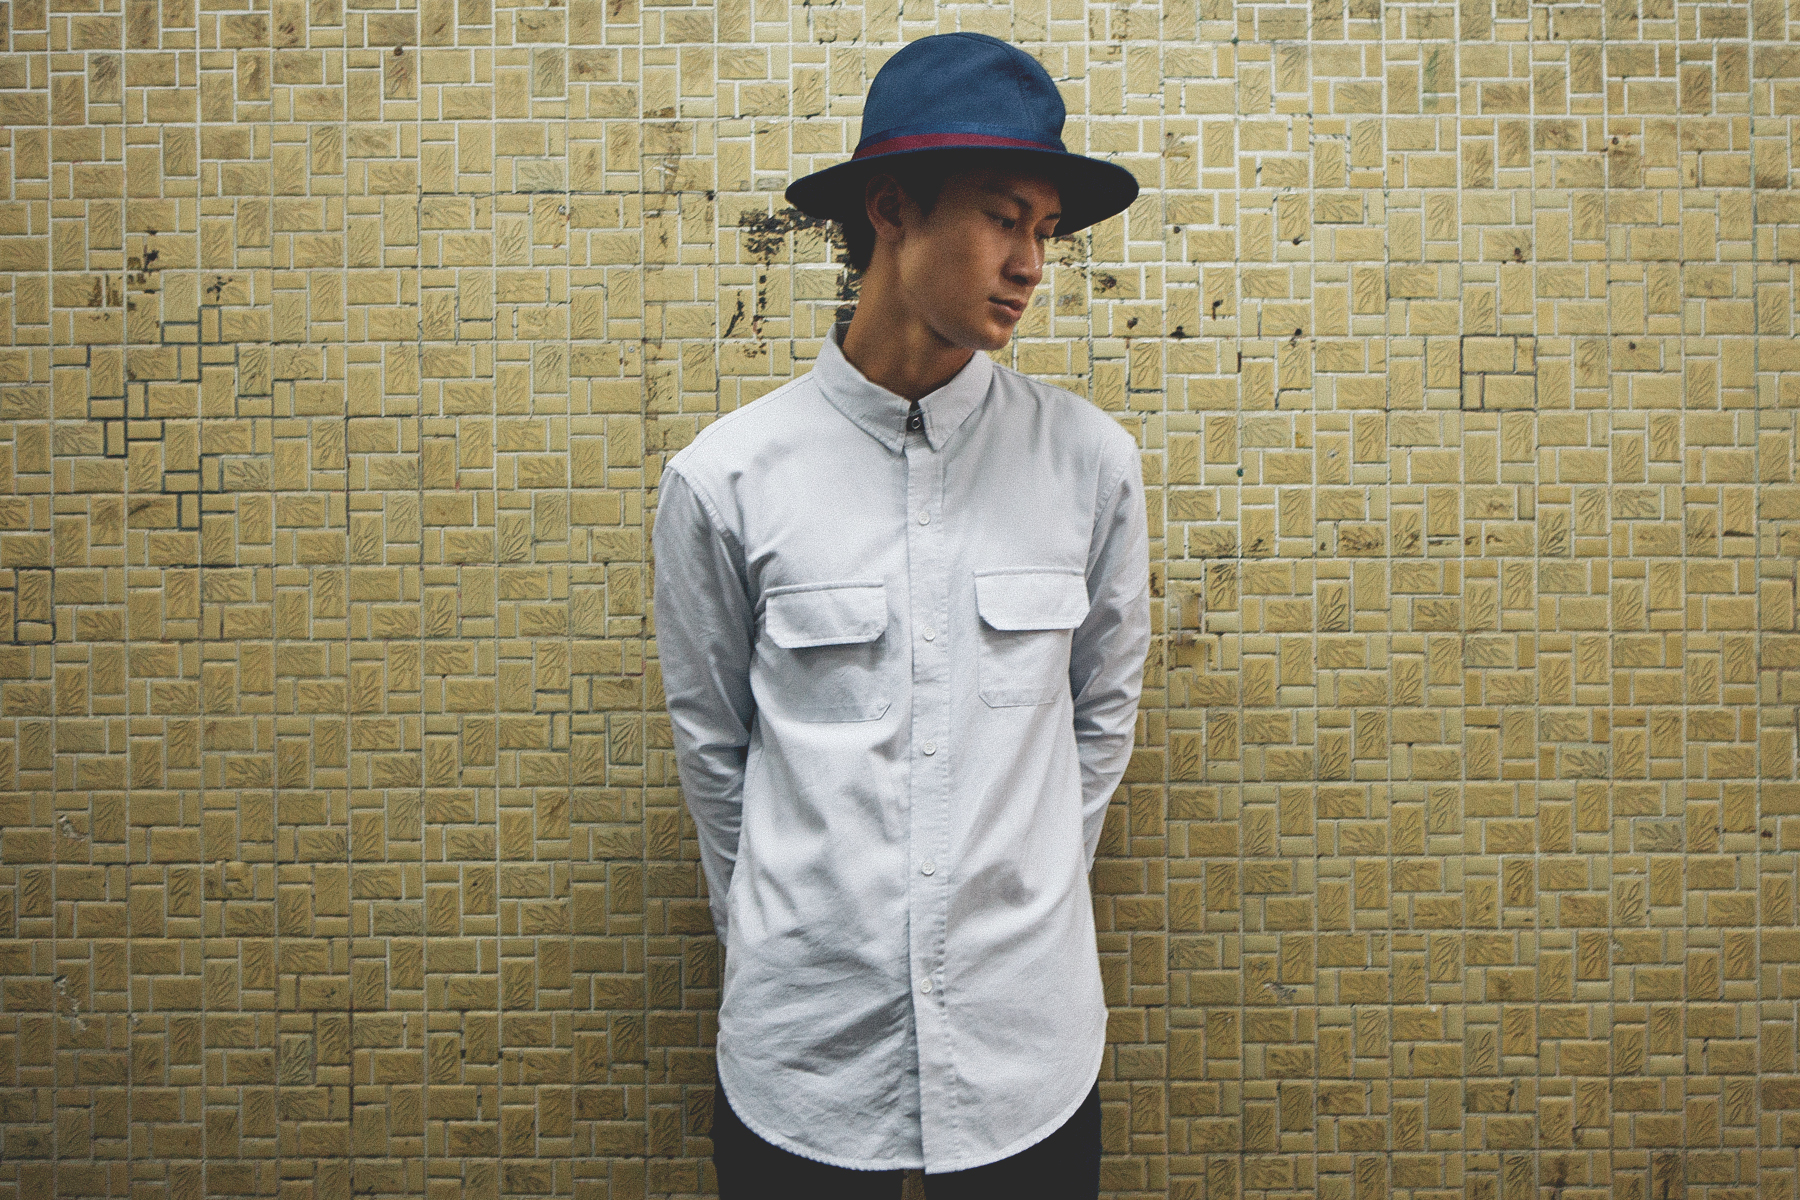 Band of Outsiders 2014 Fall/Winter Shirt Collection